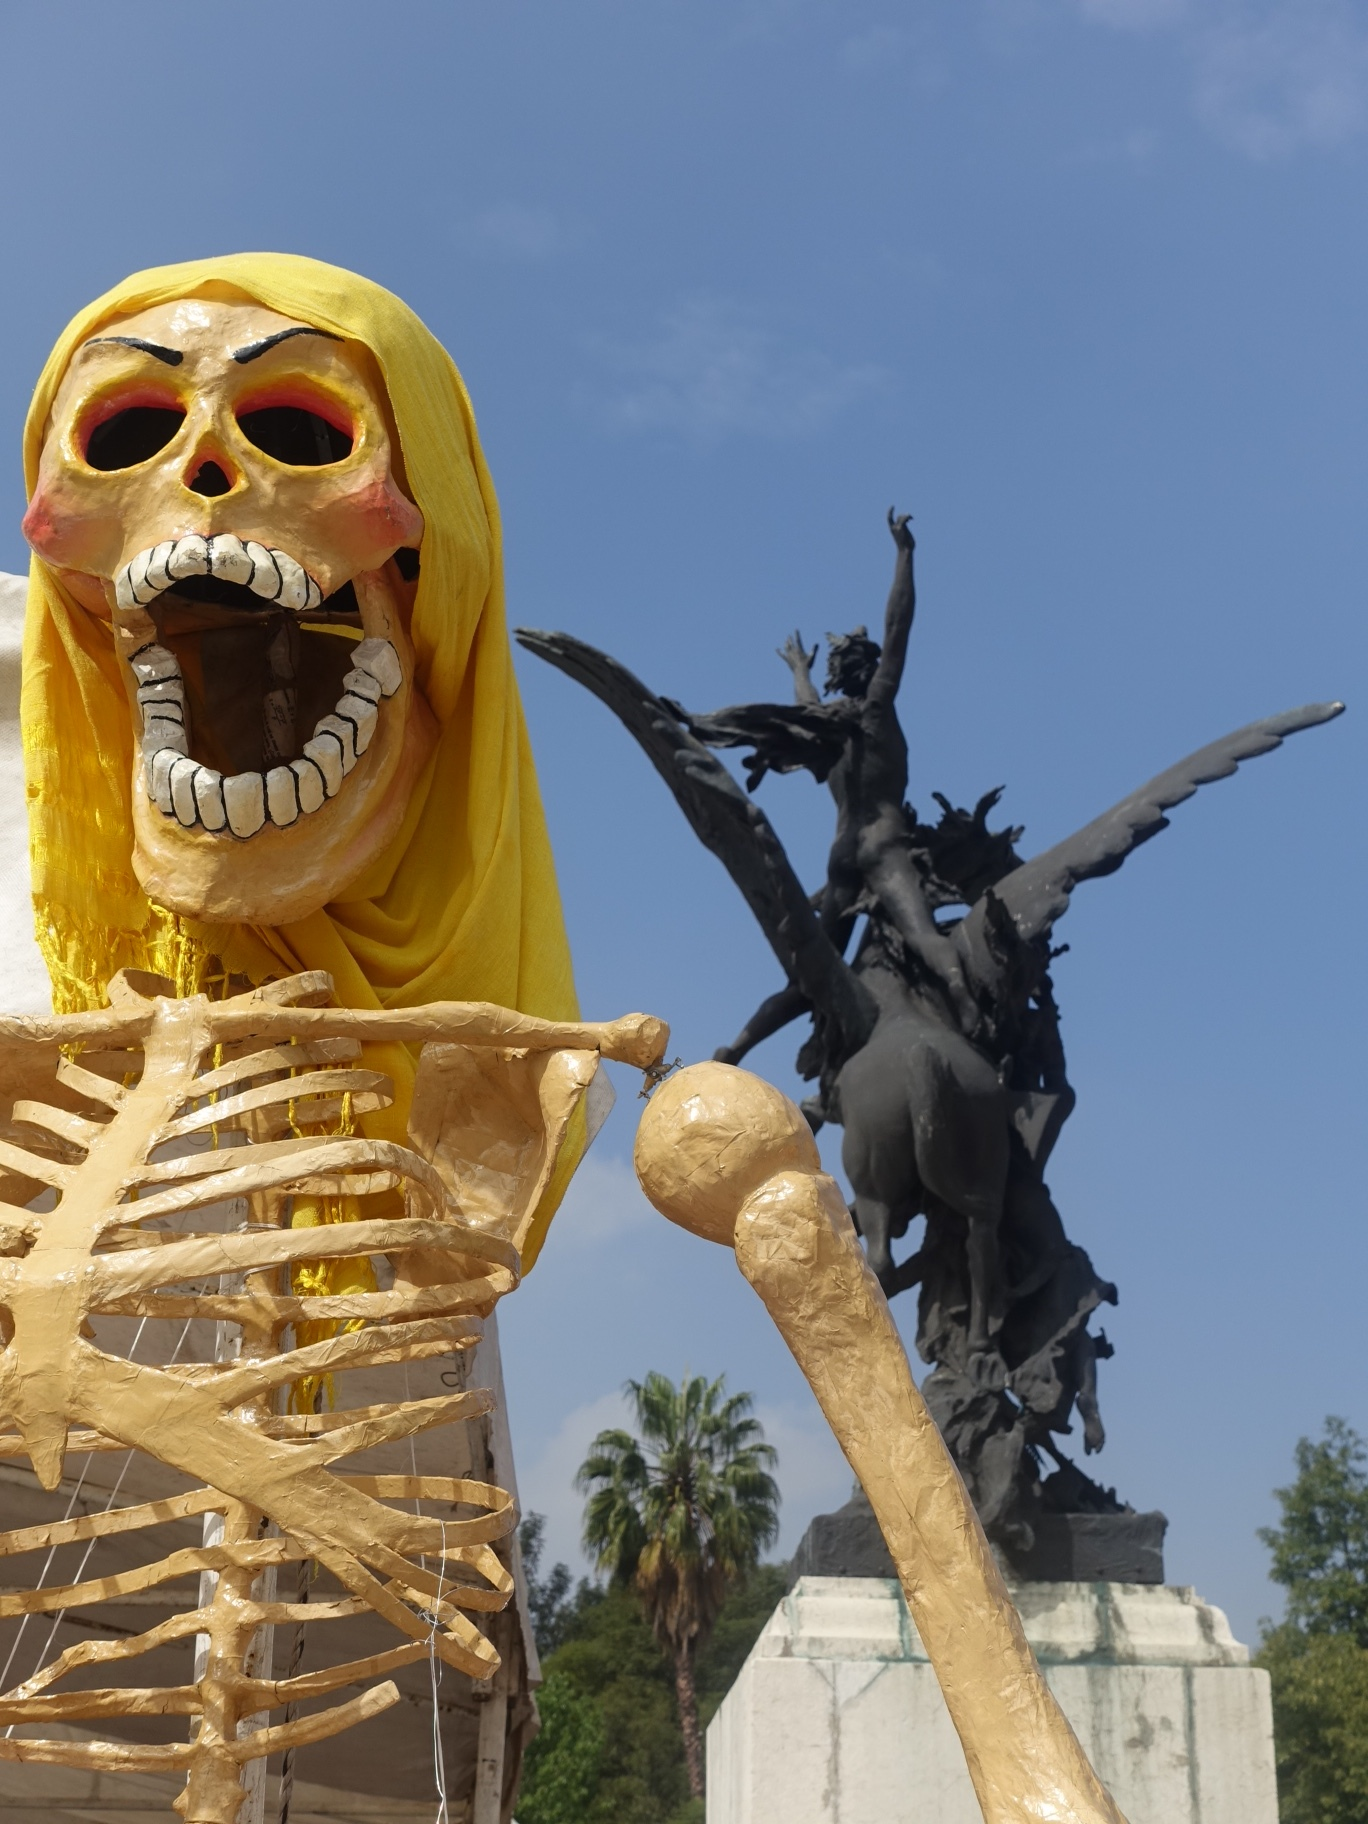 The juxtaposition of the colourful and temporary Day of the Dead skeleton figure with the permanent, dark winged-horse and figure statue captured my eye.  Located in the plaza in front of Mexico City's Bellas Artes concert hall.